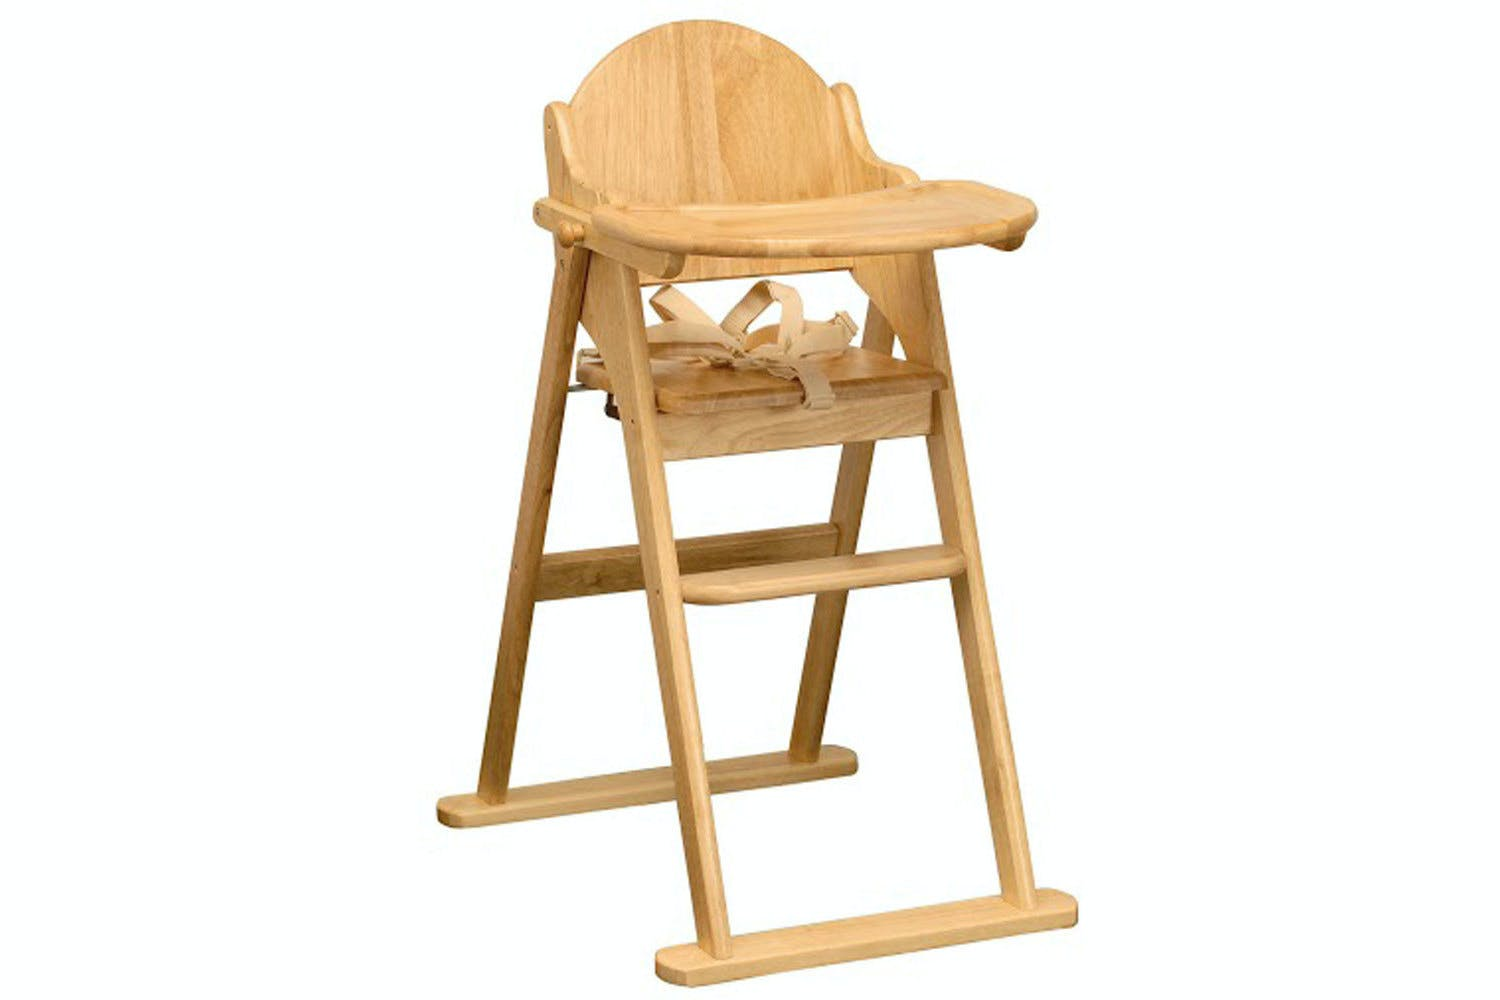 All products baby amp kids nursery furniture rocking chairs - Wooden Folding Highchair